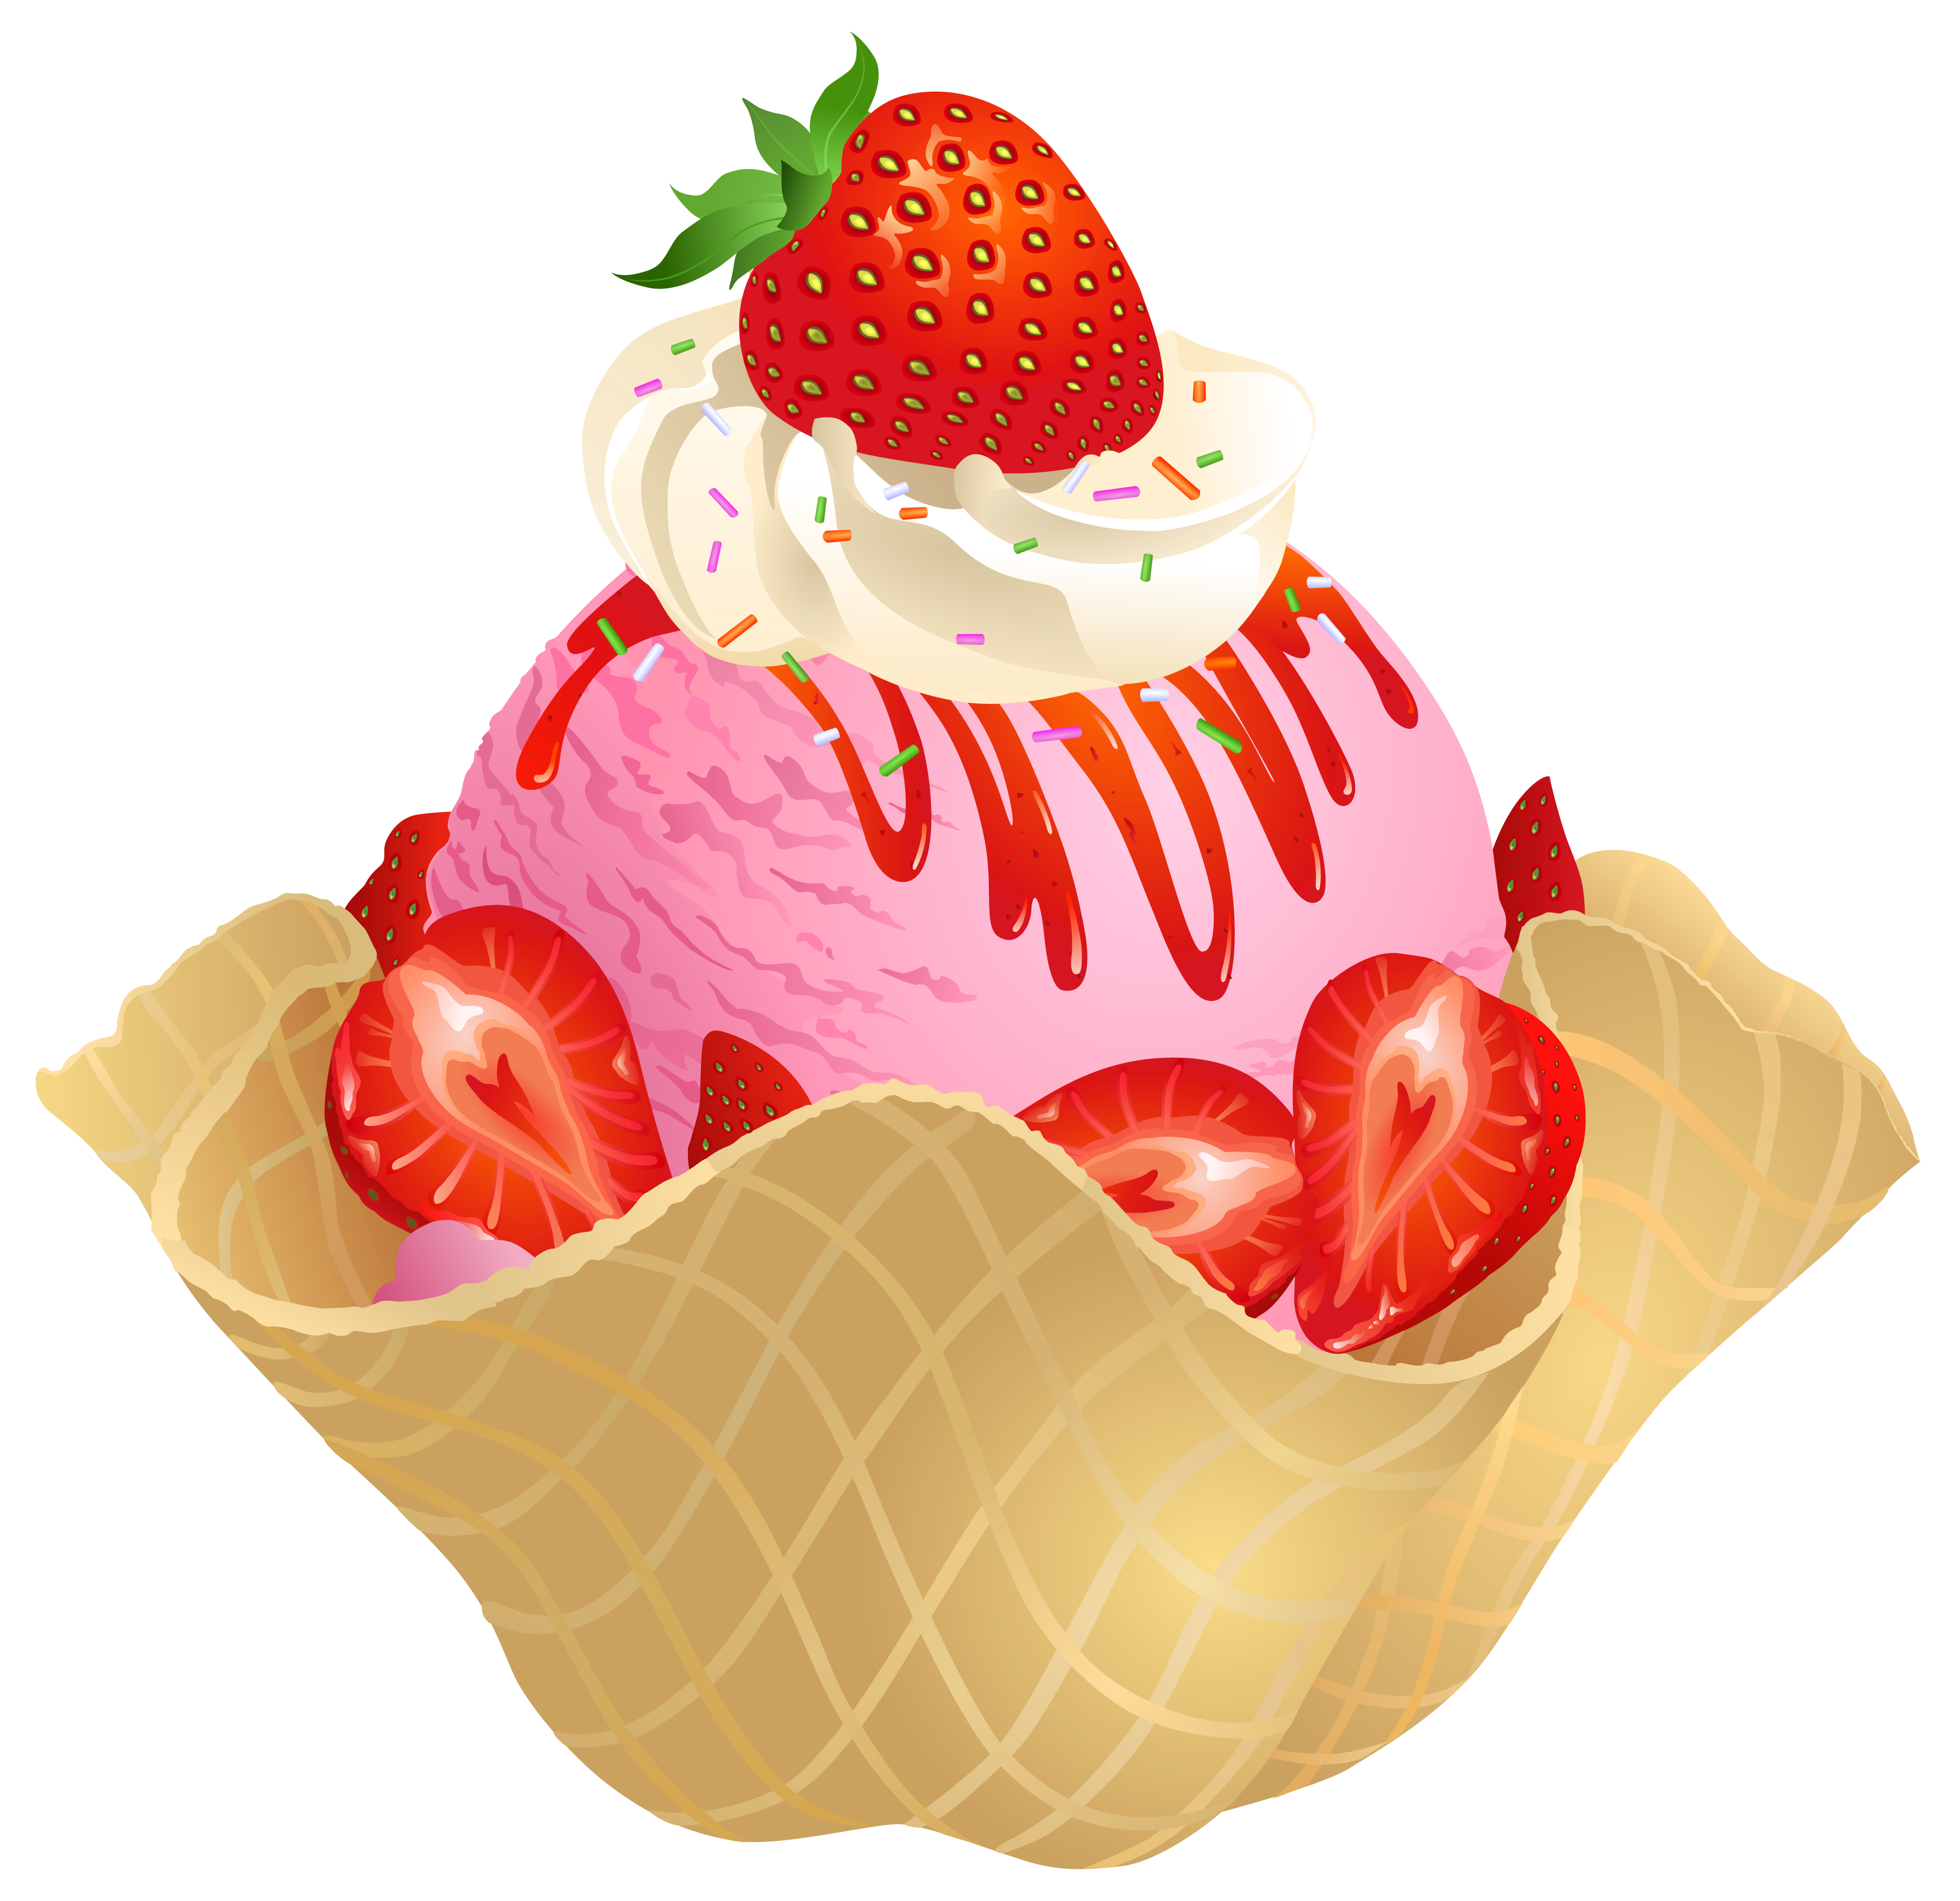 Strawberries clipart wallpaper. Transparent strawberry ice cream